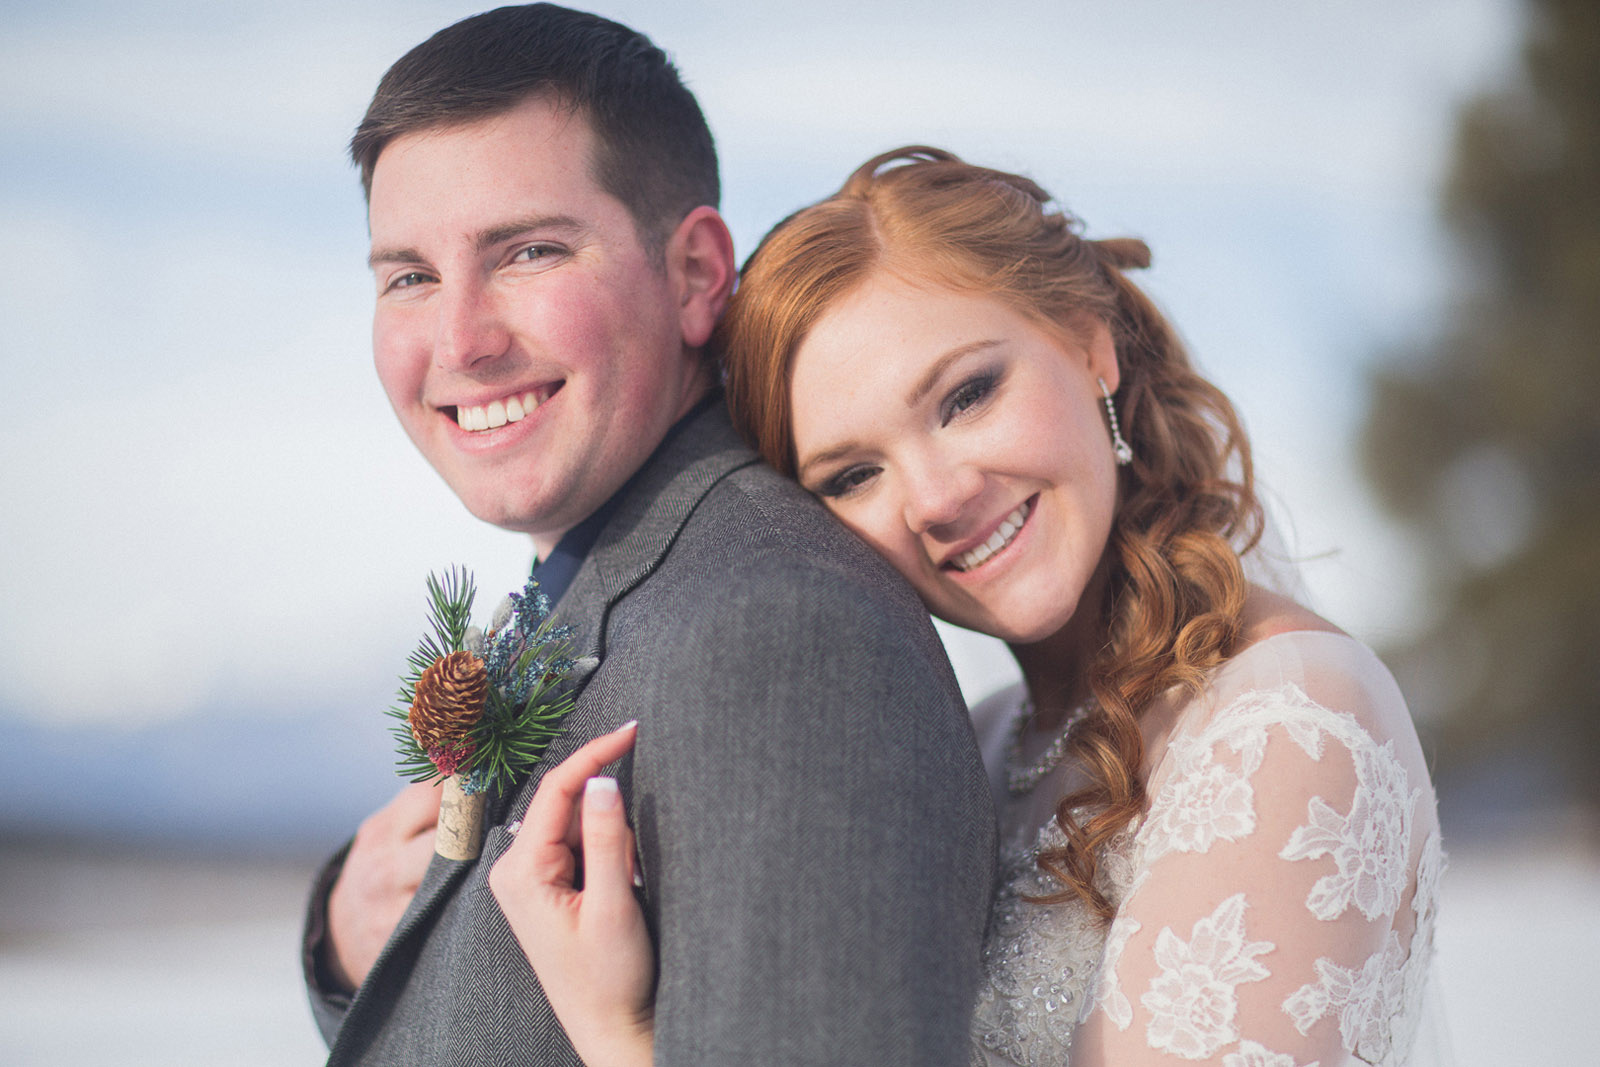 142-wedding-photographer-captures-newlyweds-in-snow-during-a-winter-snow-wedding-in-the-mountains-in-colorado